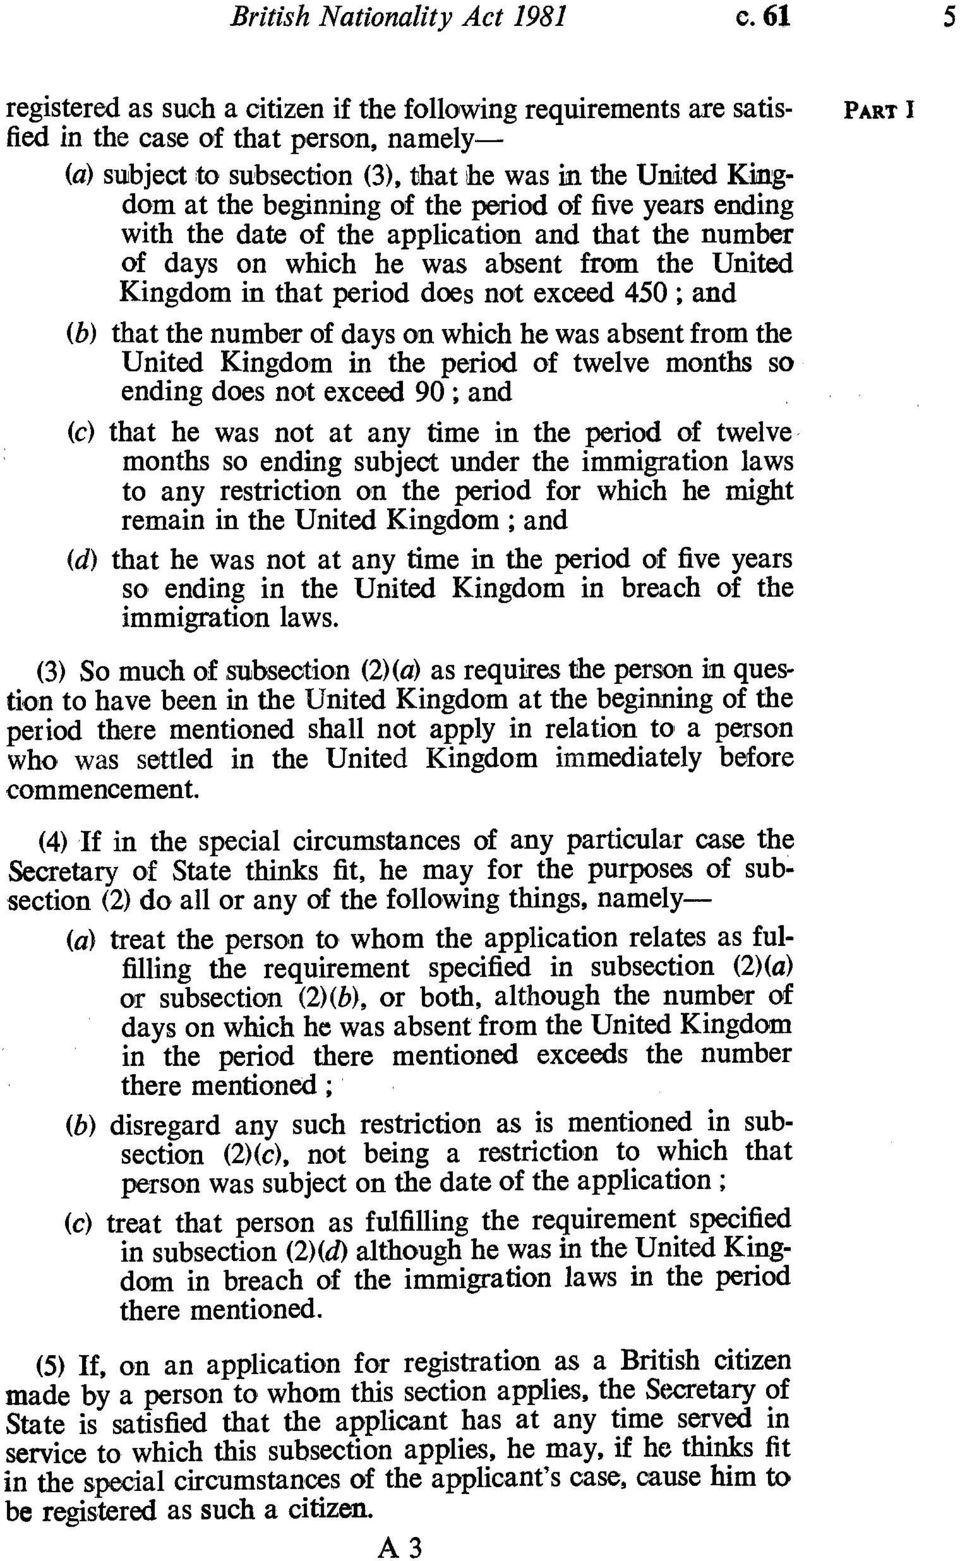 of the period of five years ending with the date of the application and that the number of days on which he was absent from the United Kingdom in that period does not exceed 450; and (b) that the